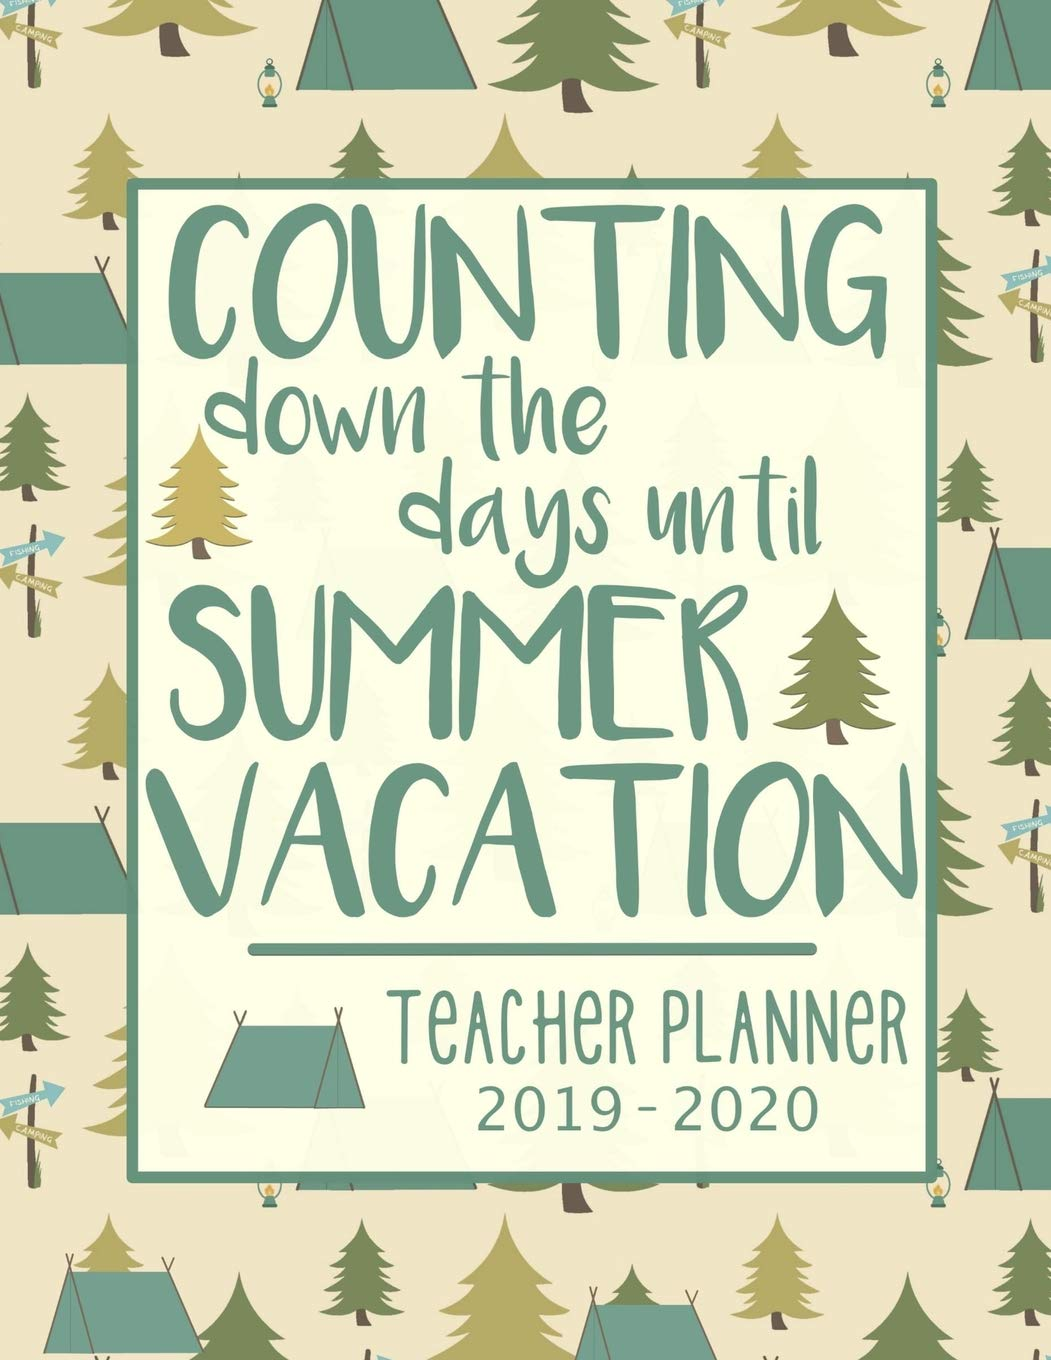 How Many Days Until Christmas 2020.Counting Down The Days Until Summer Vacation School Teacher